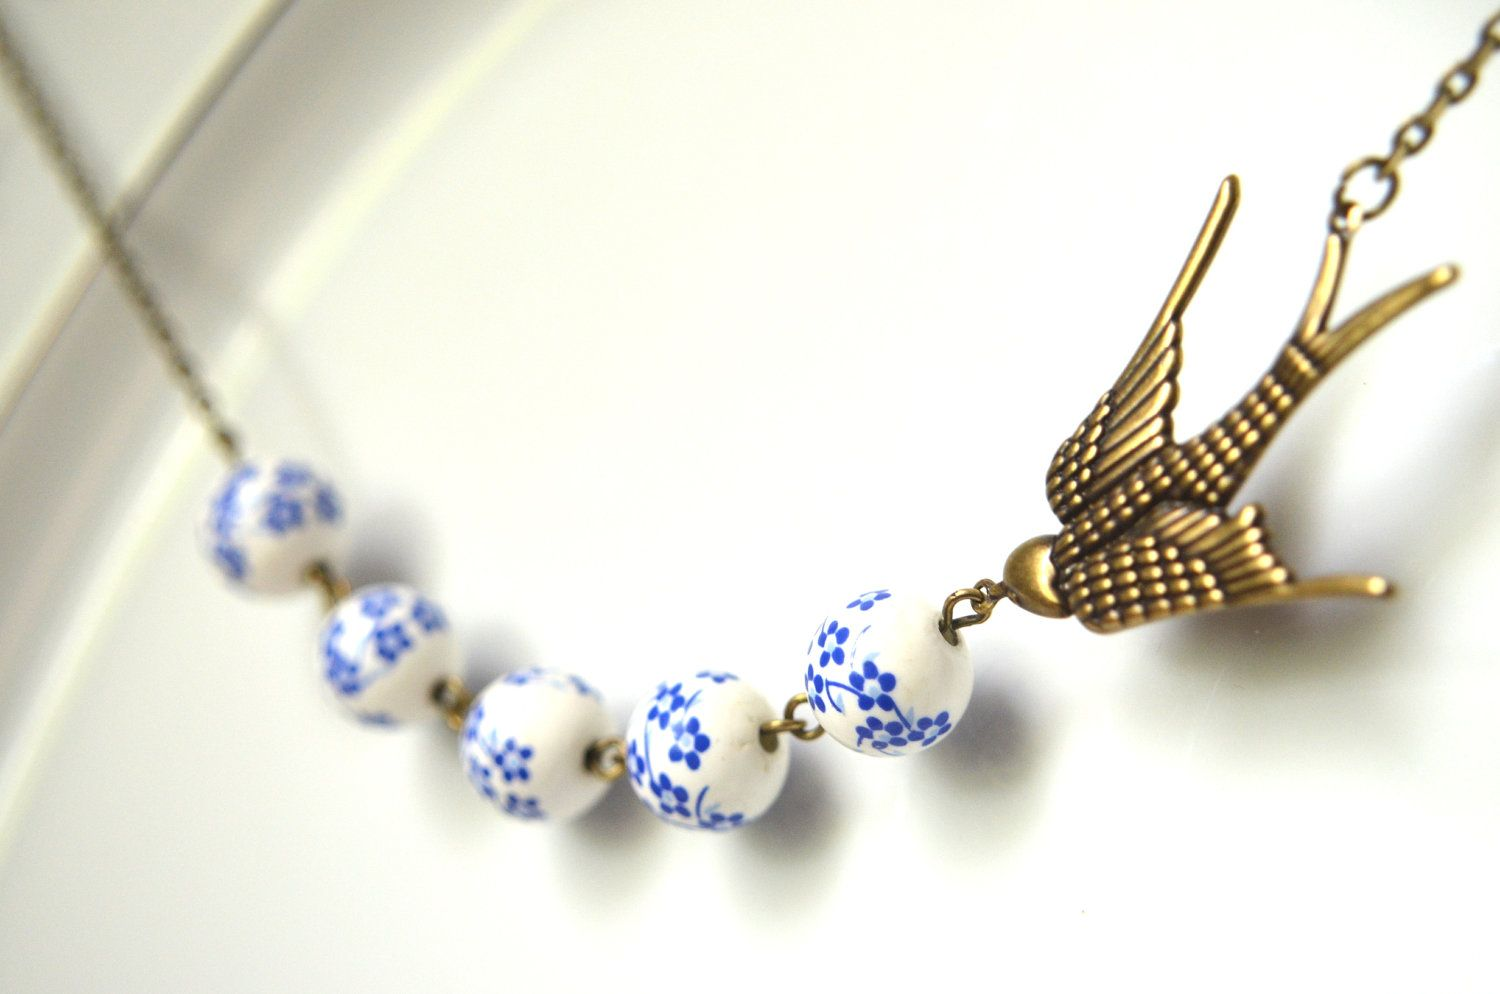 White & Blue Bird Necklace - Sparrow, Antique Brass, Like Polish Pottery, Porcelain, Ceramic, Diving Swallow. $18.00, via Etsy.